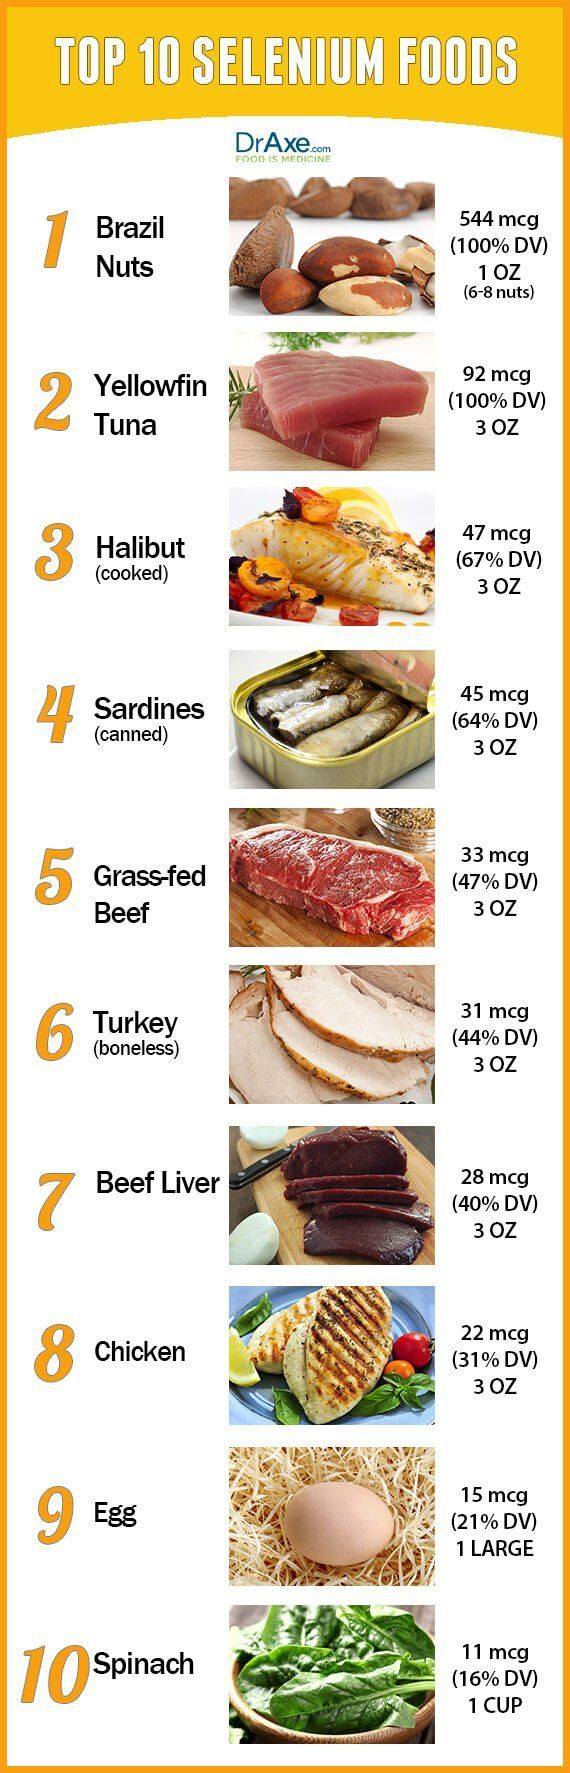 Top 10 Foods High in Selenium - DrAxe.com